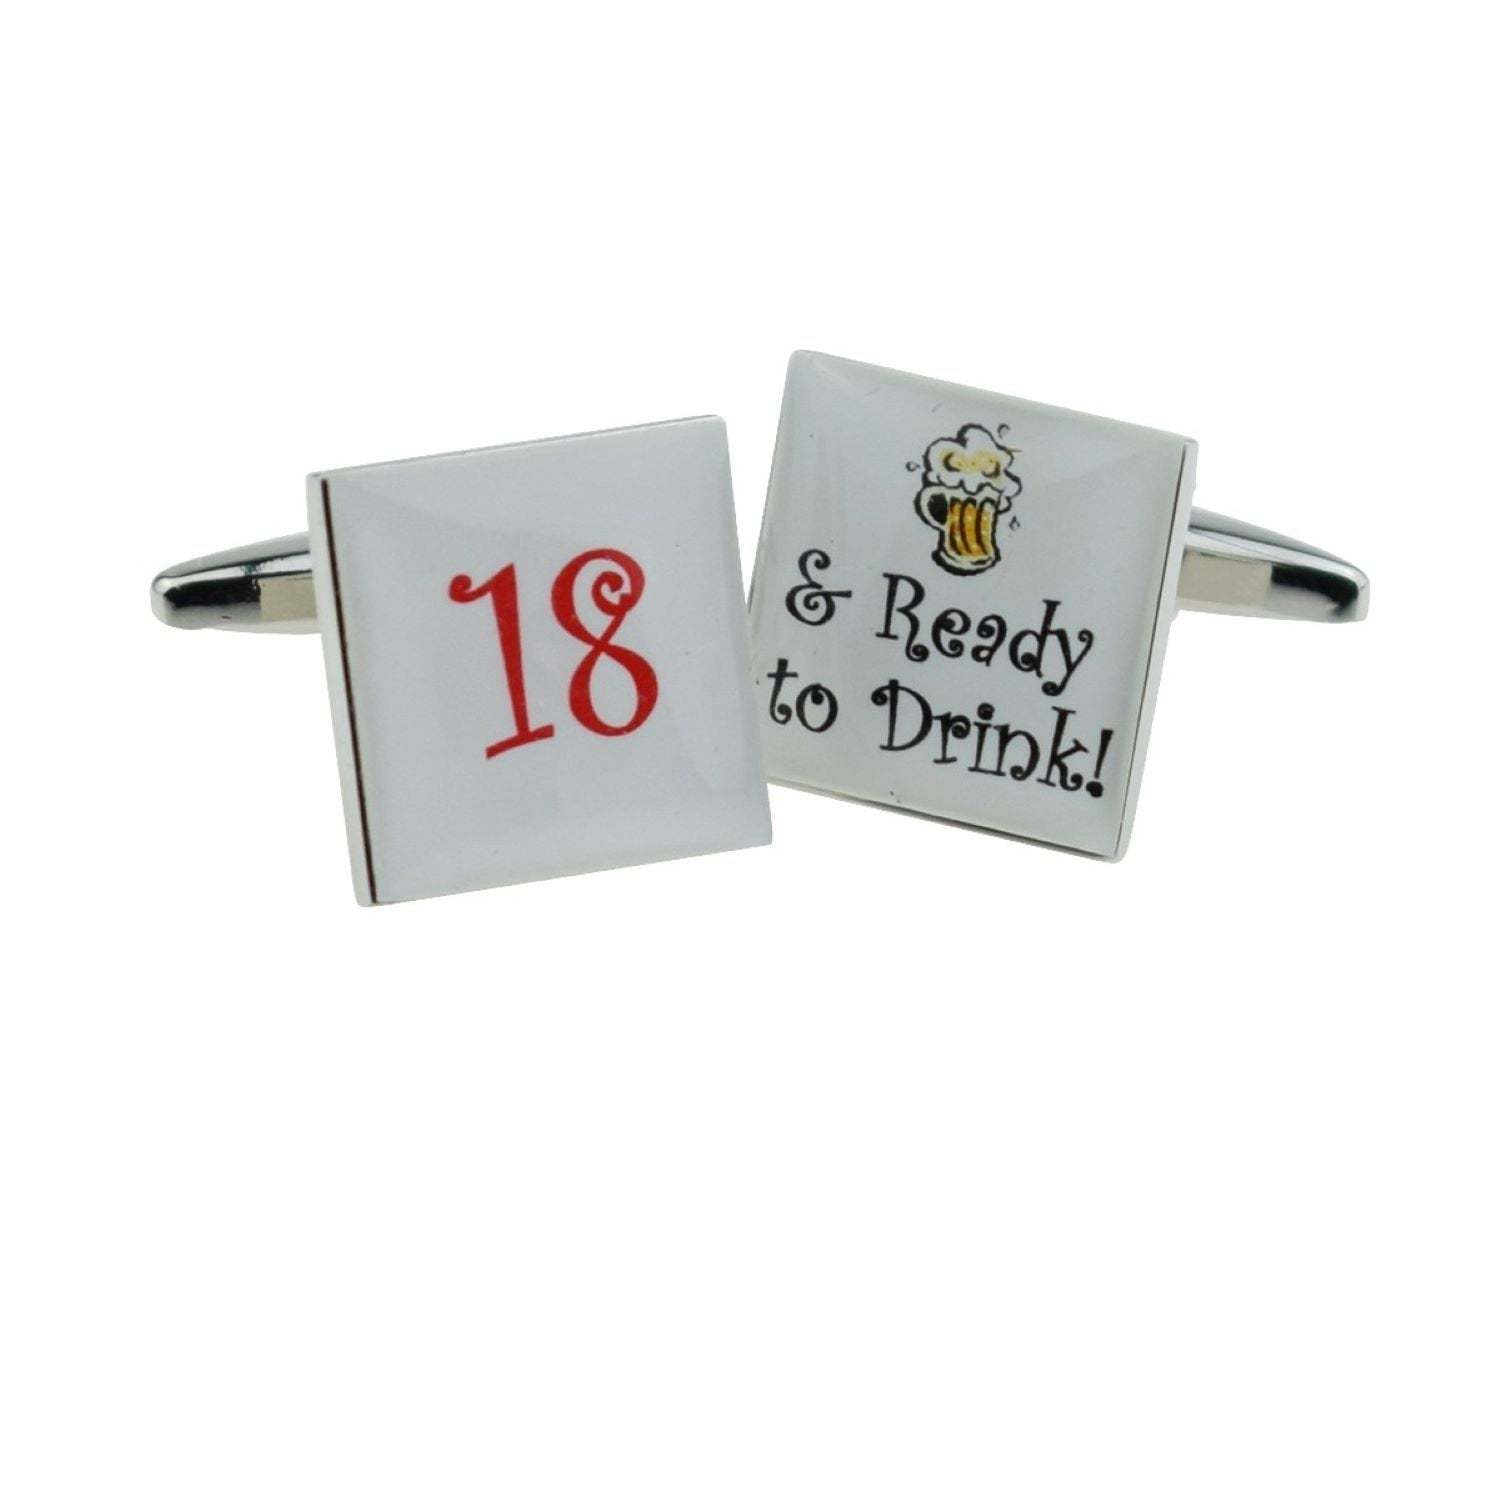 Cool 18 & Ready to Drink Cufflinks  . gift boxed cufflinks ideal gift,